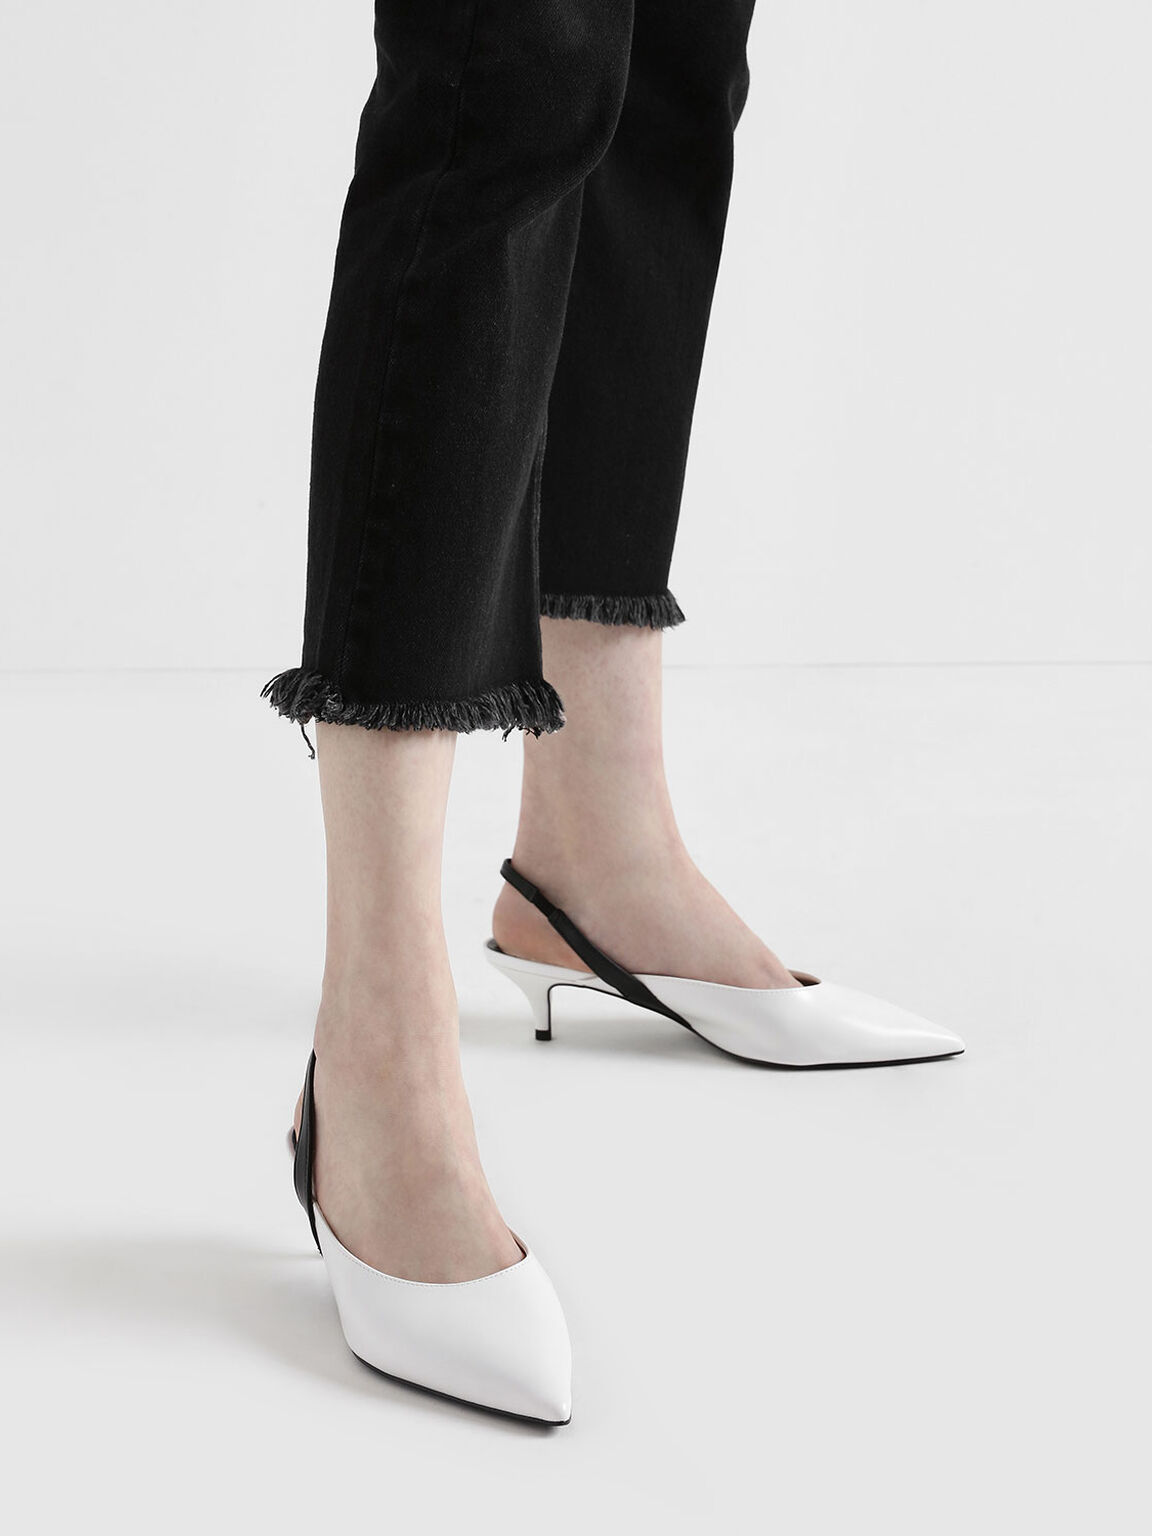 Two-Tone Pointed Toe Slingback Kitten Heels, White, hi-res